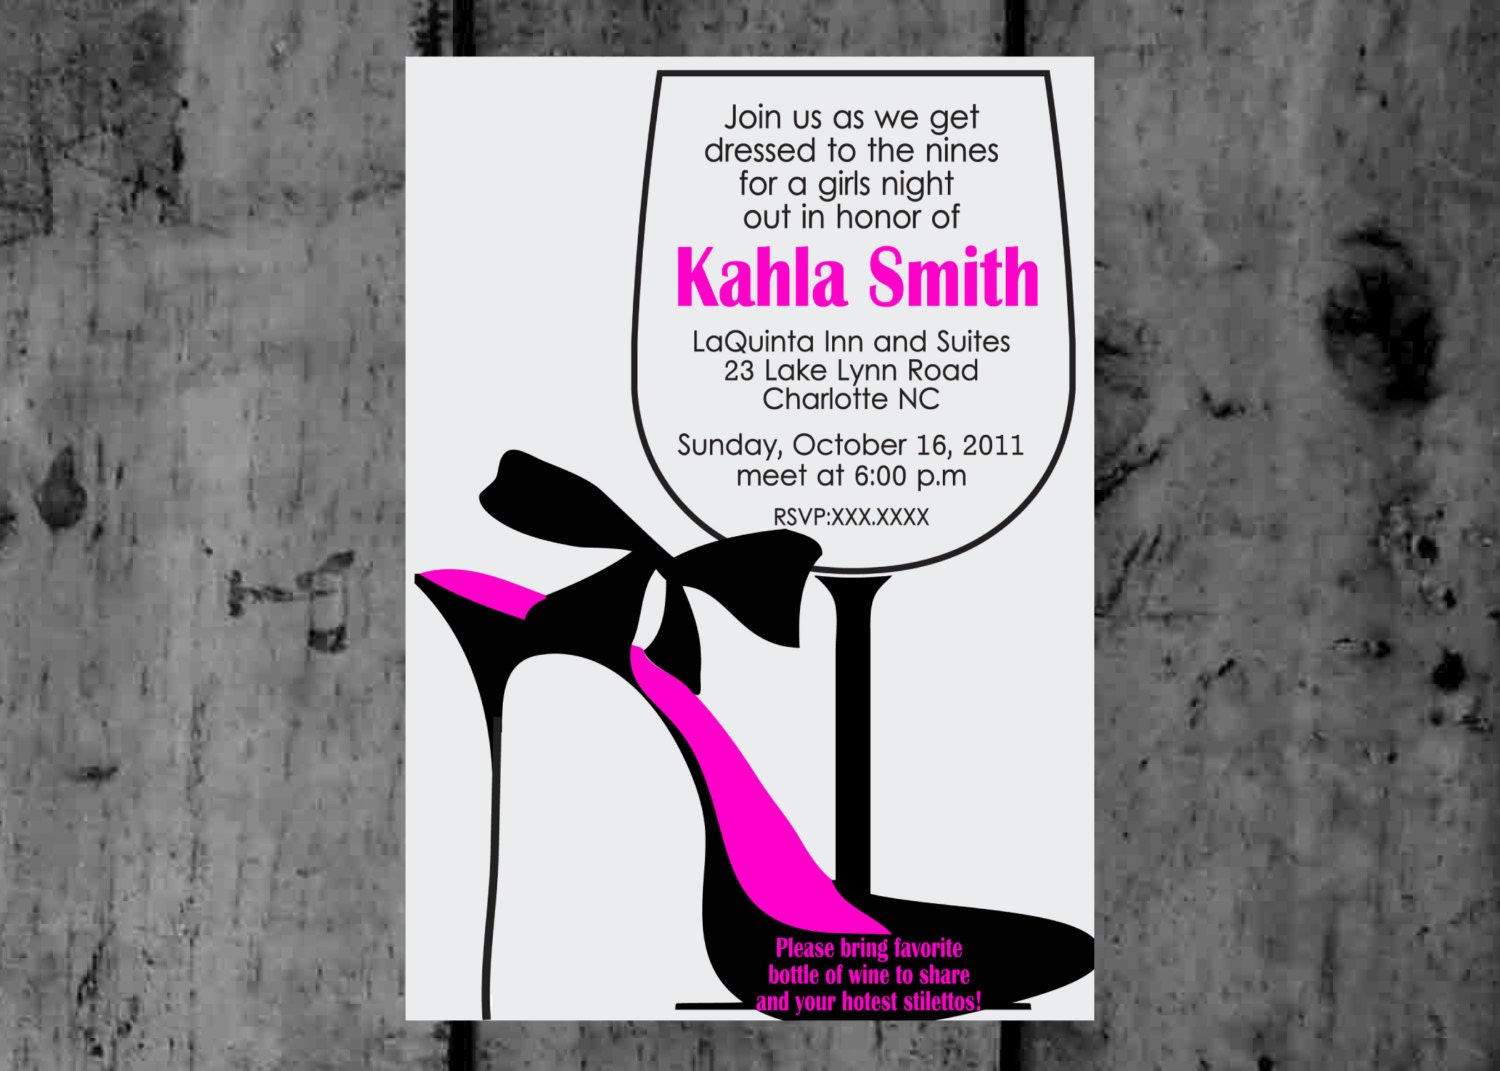 Girls Night Out Invitation is luxury invitations layout